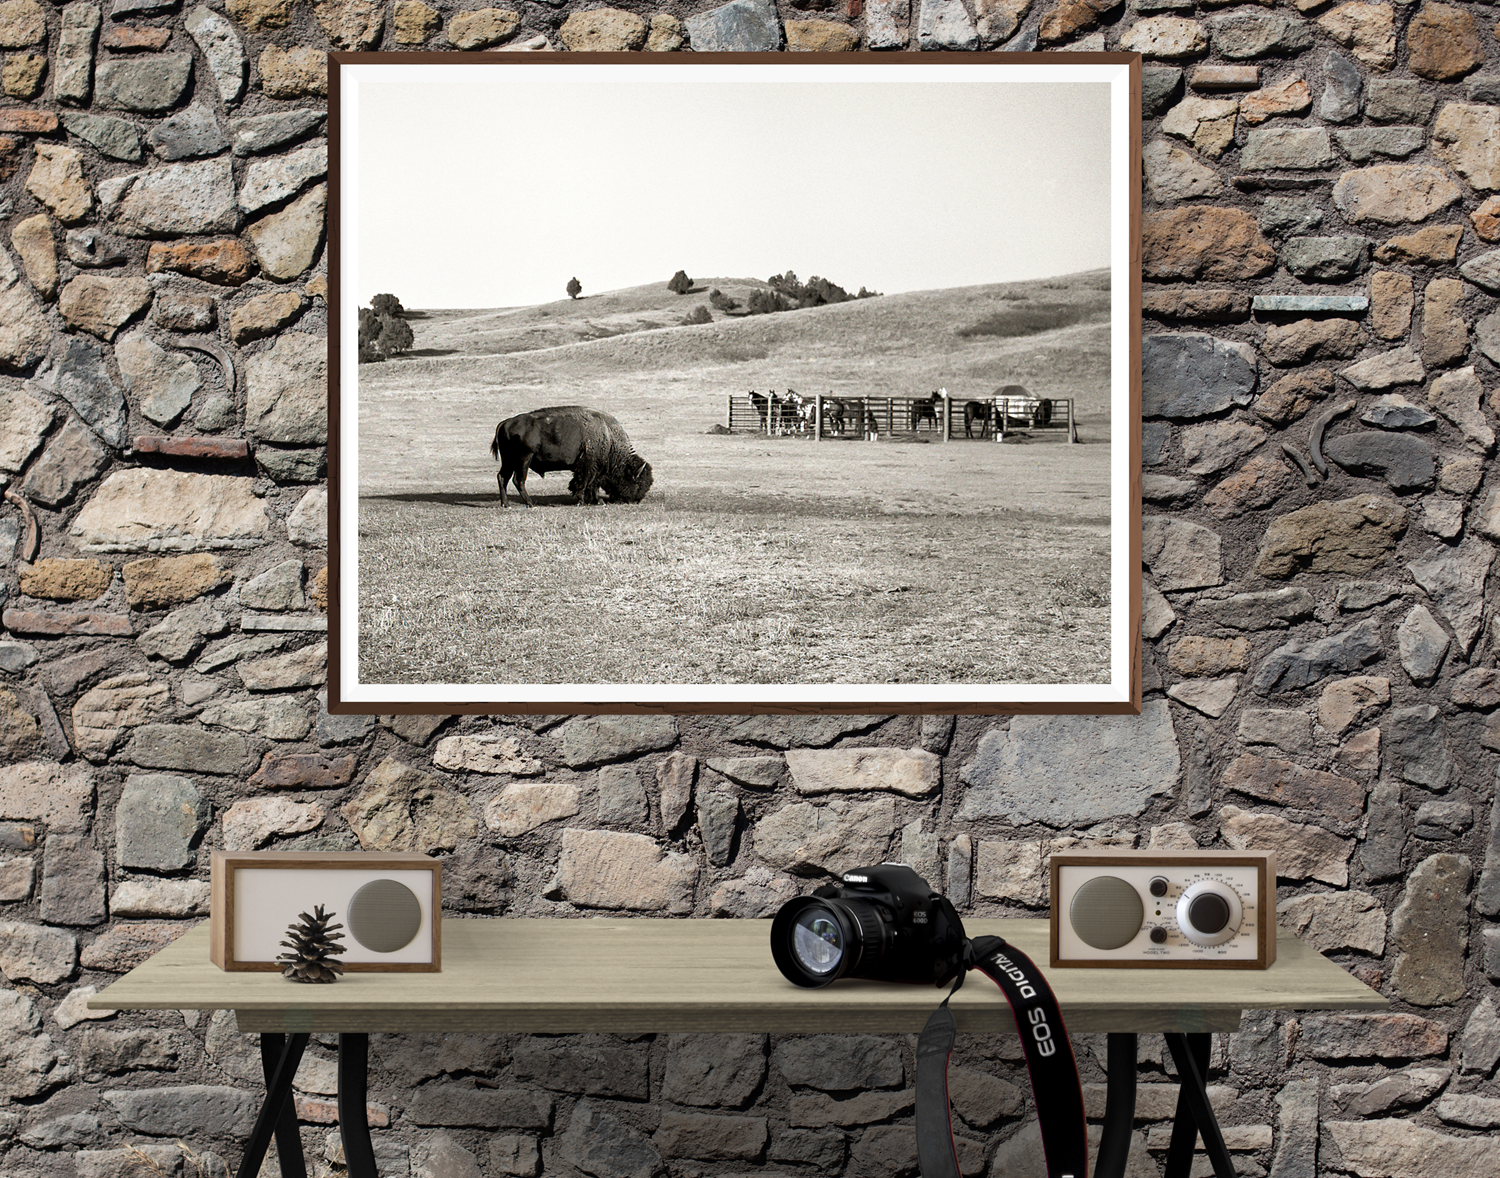 American Bison and Horses, South Dakota Badlands Black and White Art Print